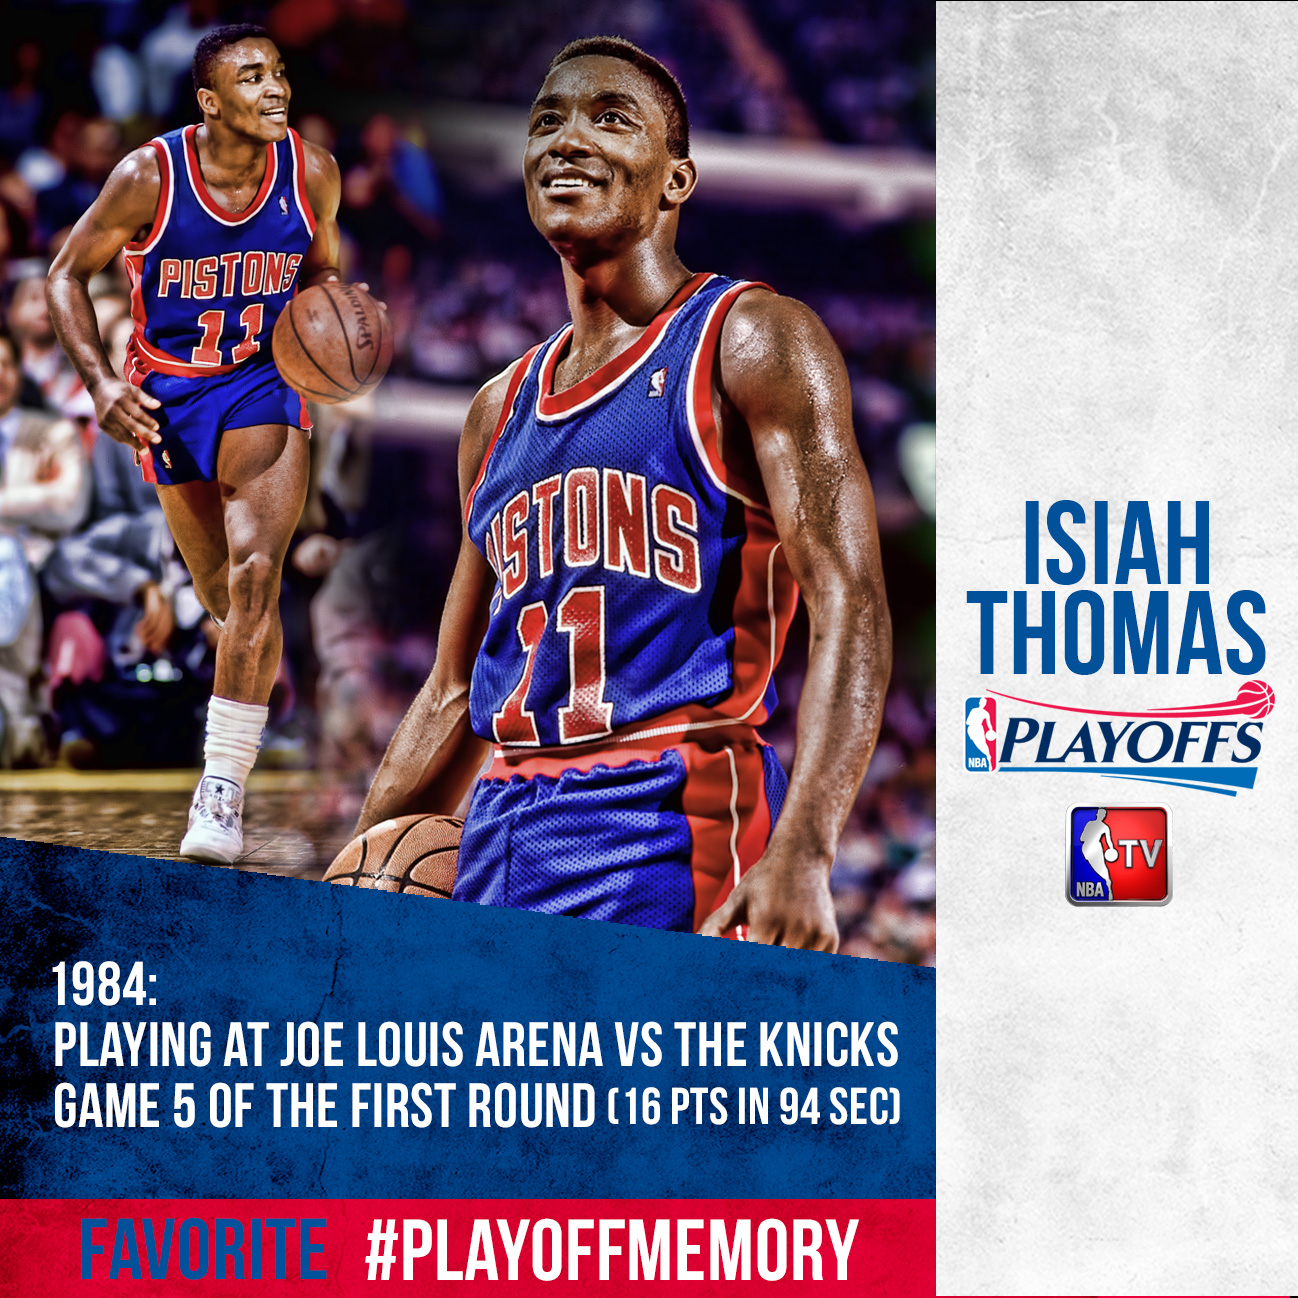 Isiah Thomas - #PlayoffMemory